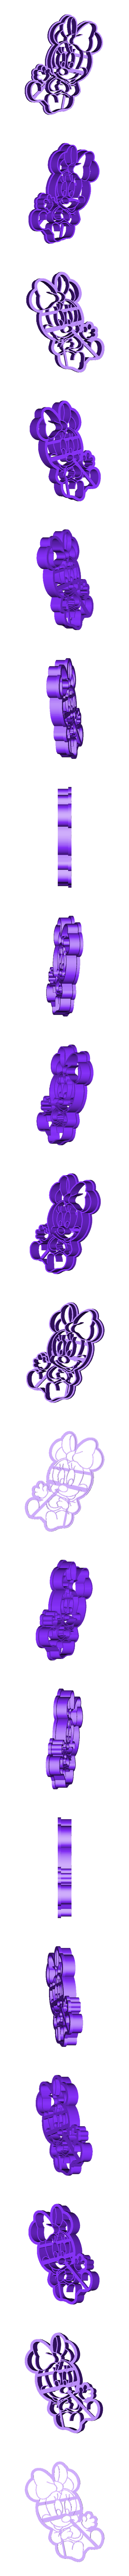 minnie bebe 9 cm.stl Download free STL file Baby Minnie - Baby Minnie - Cookie cutter • Object to 3D print, Taladrodesing